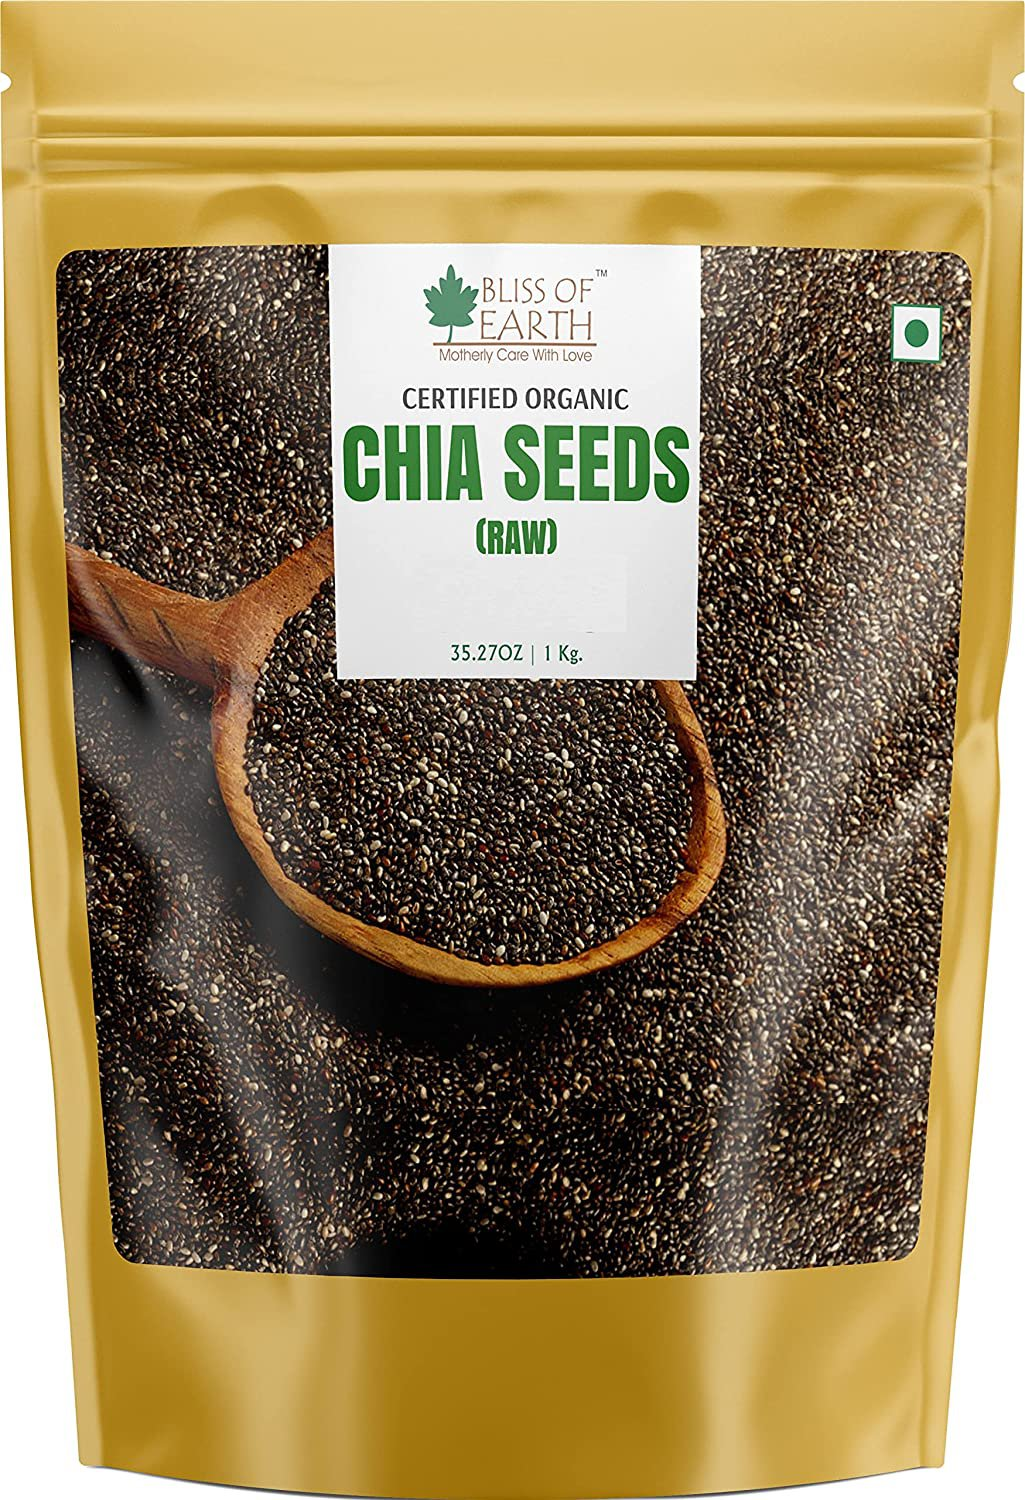 Bliss of Earth Organic Raw Chia Seeds For Weight Loss 1kg, Raw Super Food